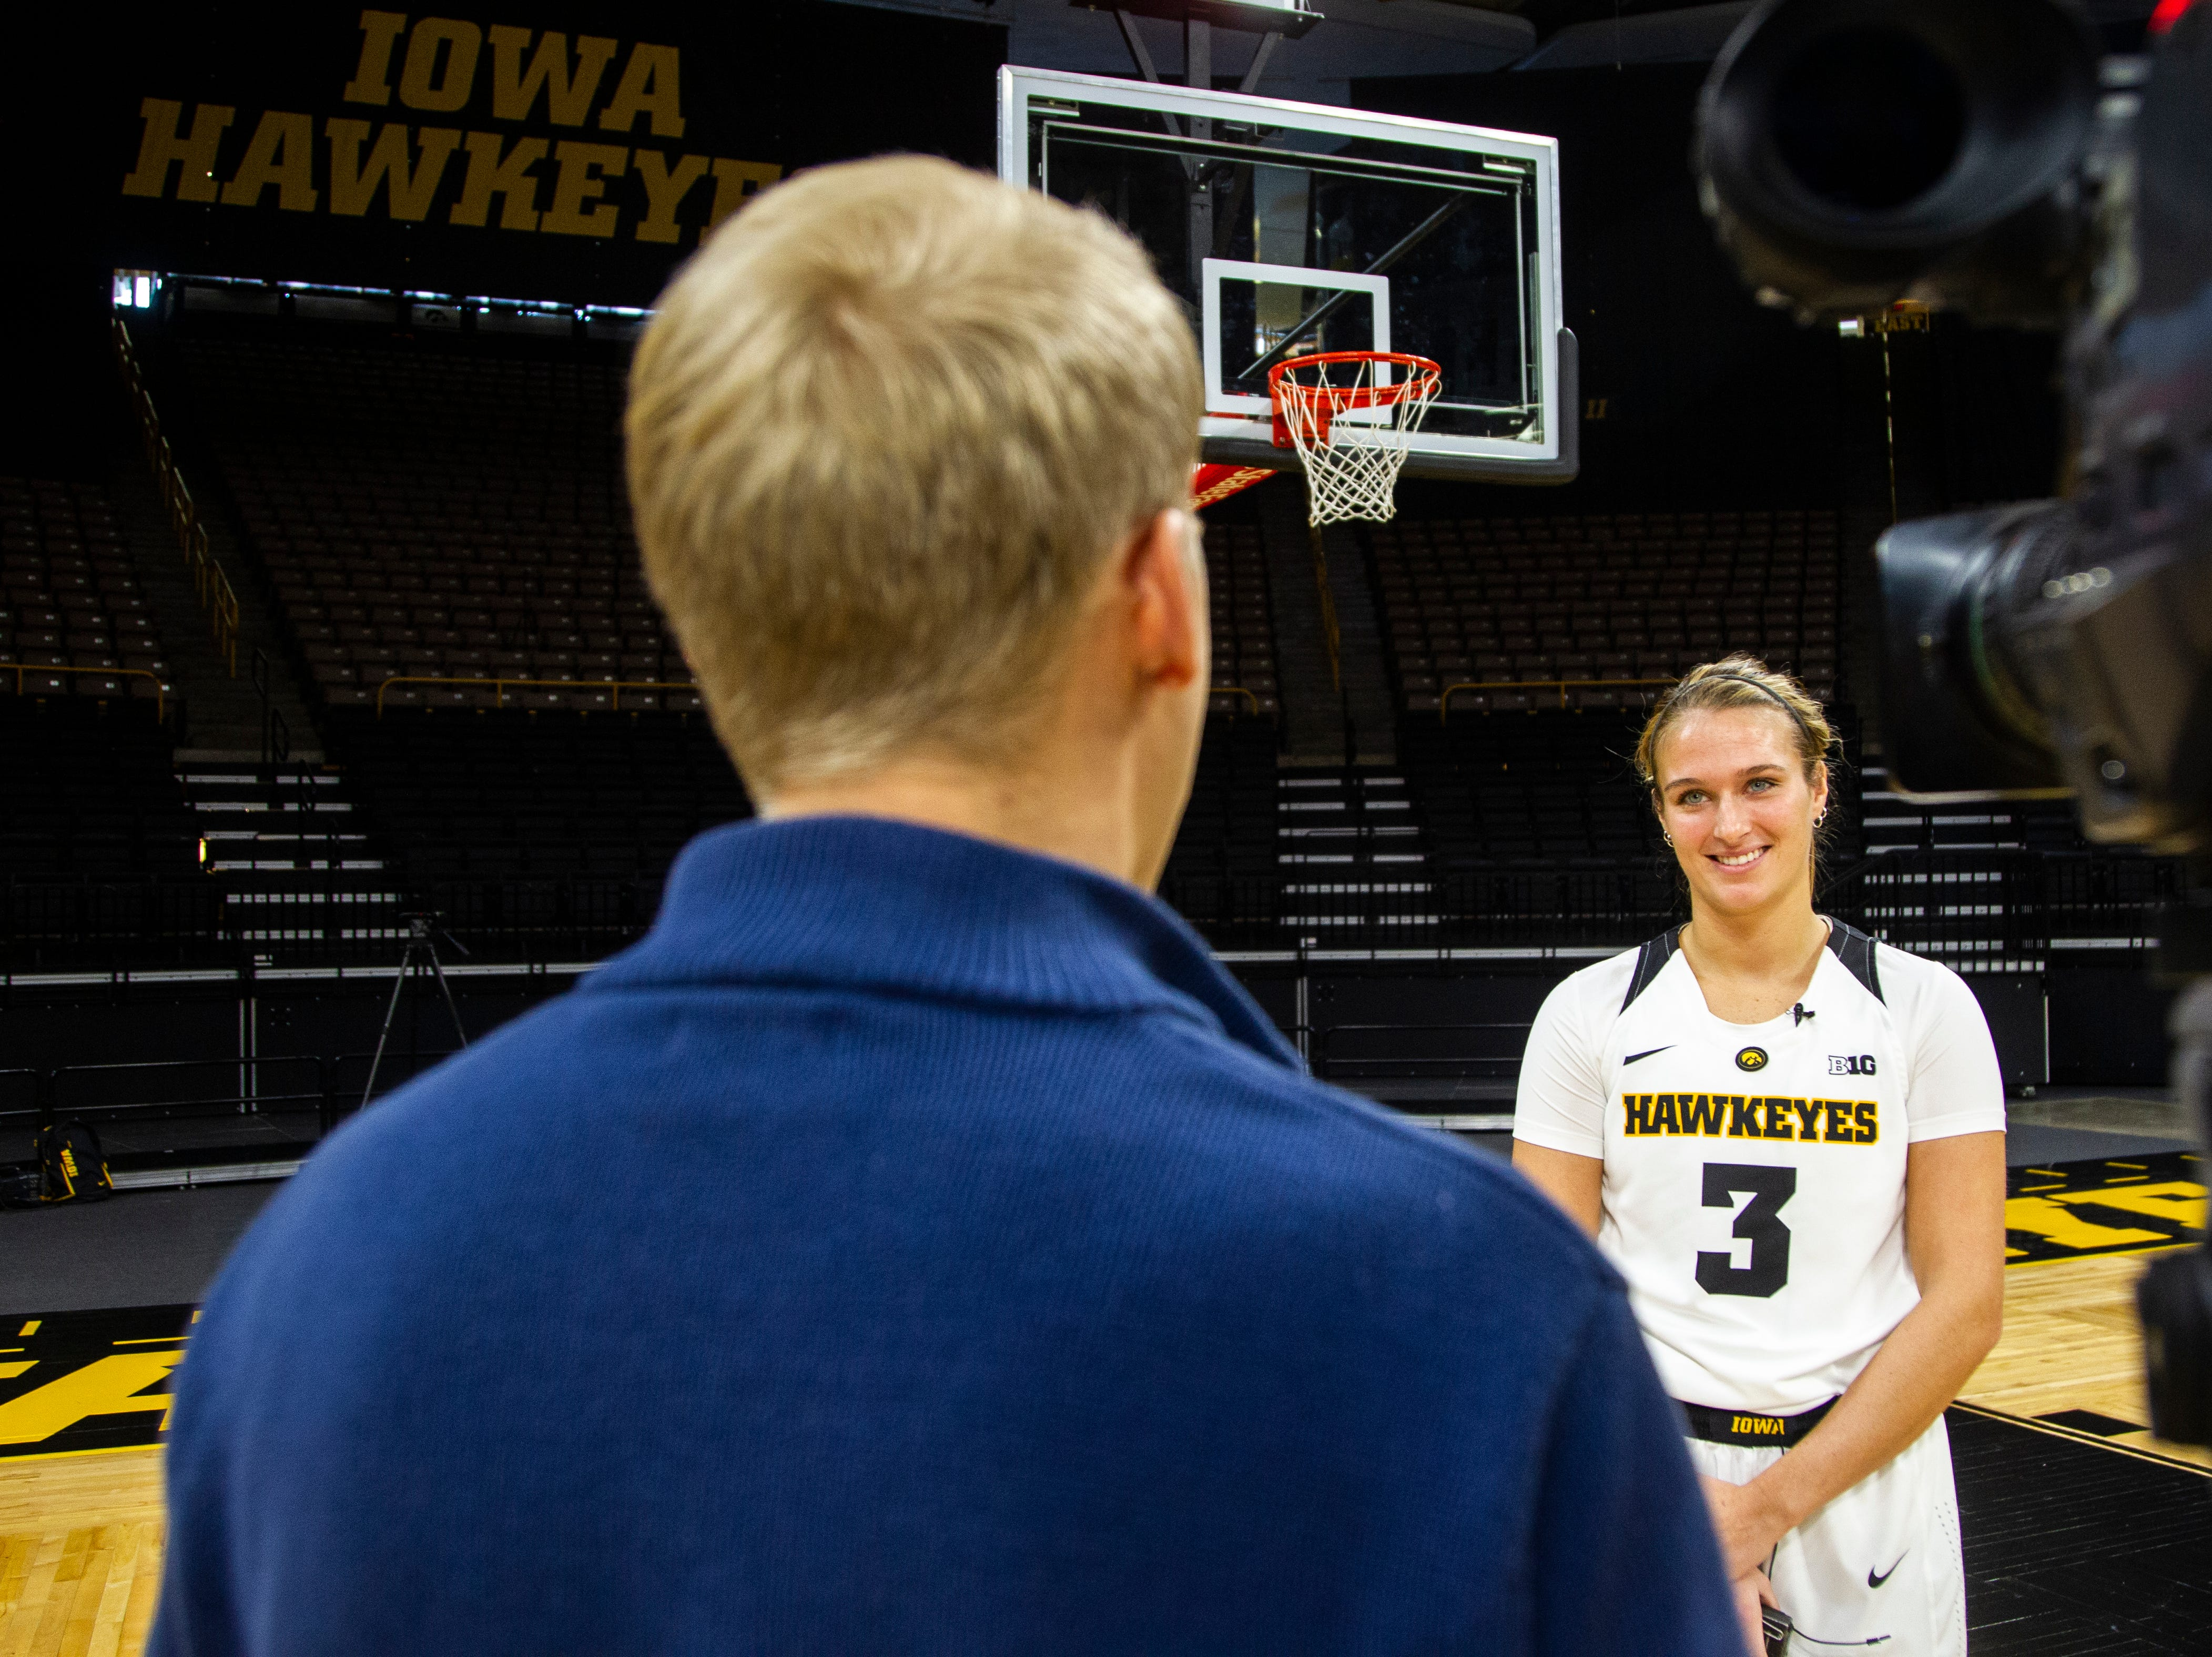 Iowa guard Makenzie Meyer (3) speaks with a reporter during Hawkeye women's basketball media day on Wednesday, Oct. 31, 2018, at Carver-Hawkeye Arena in Iowa City.